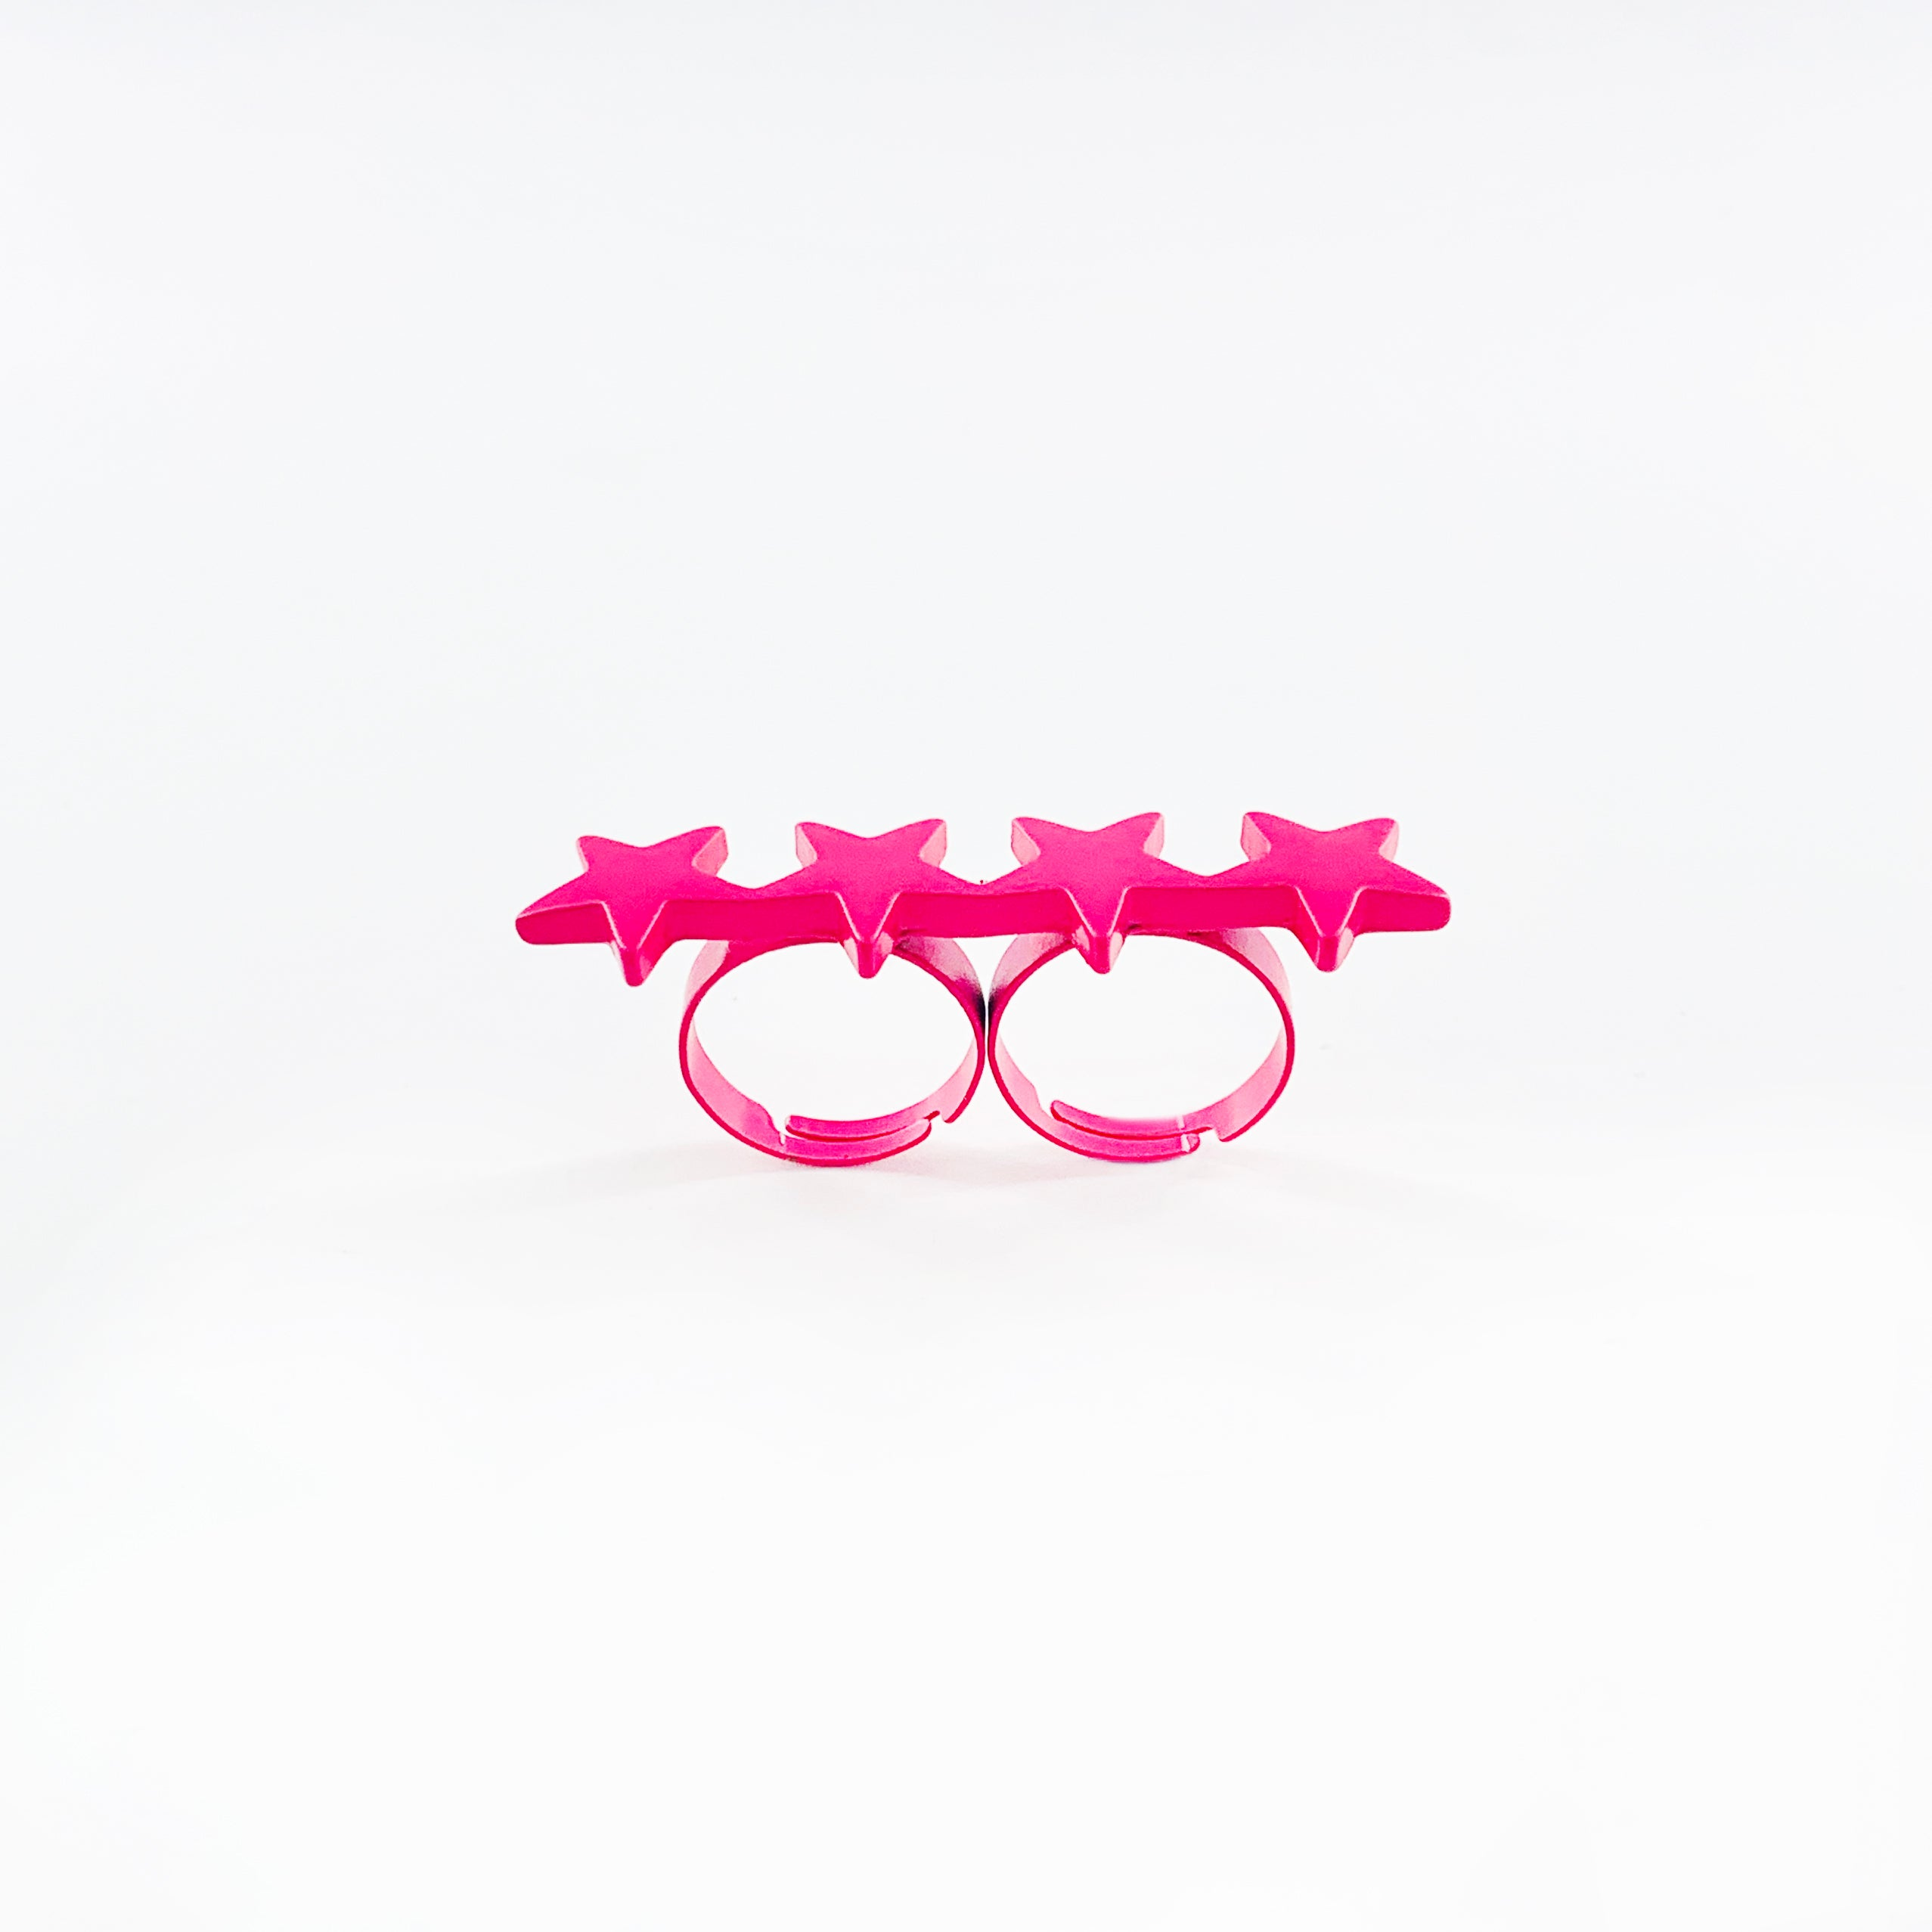 Hot pink ring with stars